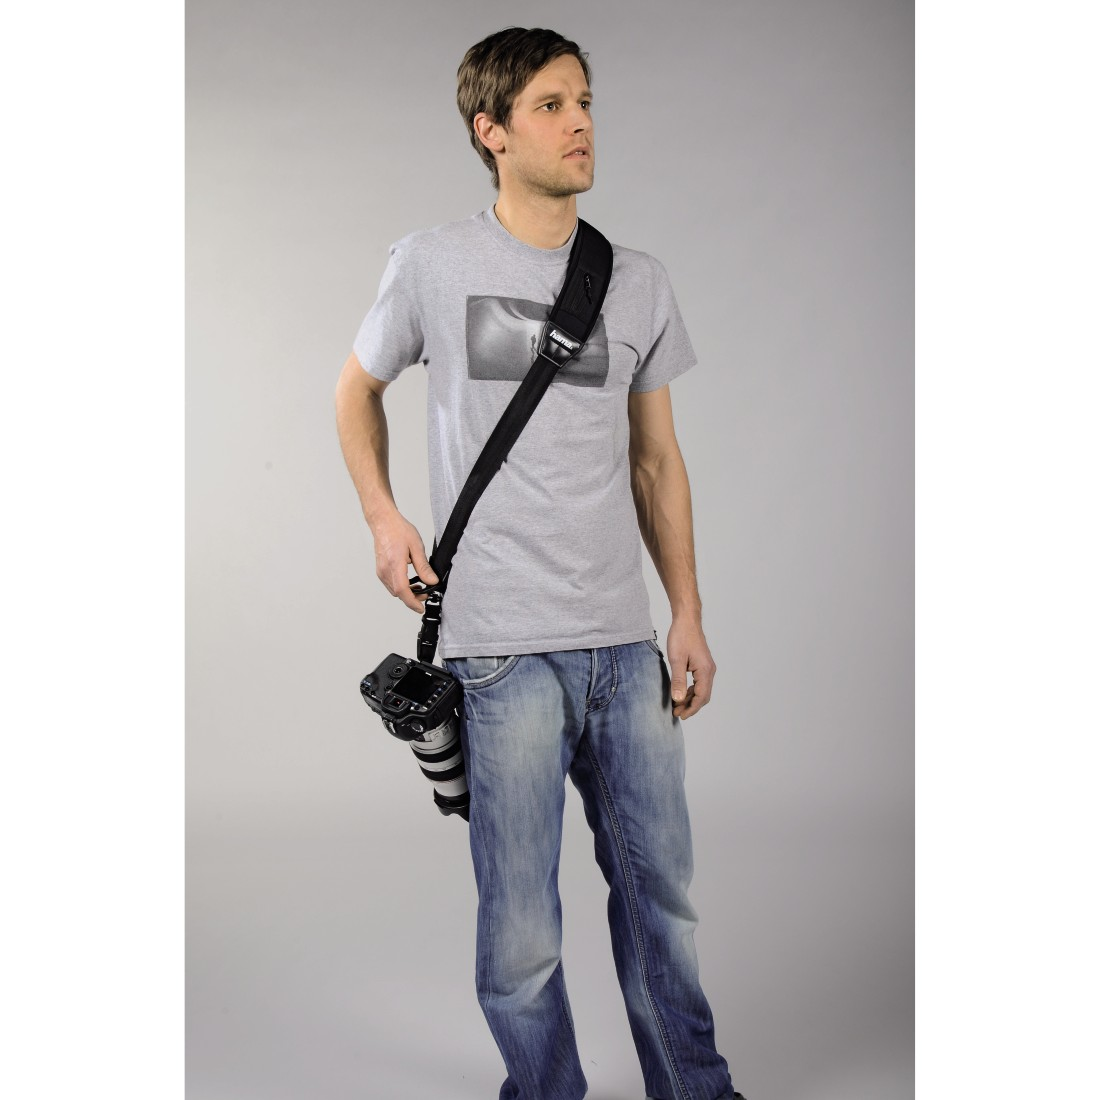 awx2 High-Res Appliance 2 - Hama, Quick Shoot Strap Carrying Strap for SLR Cameras